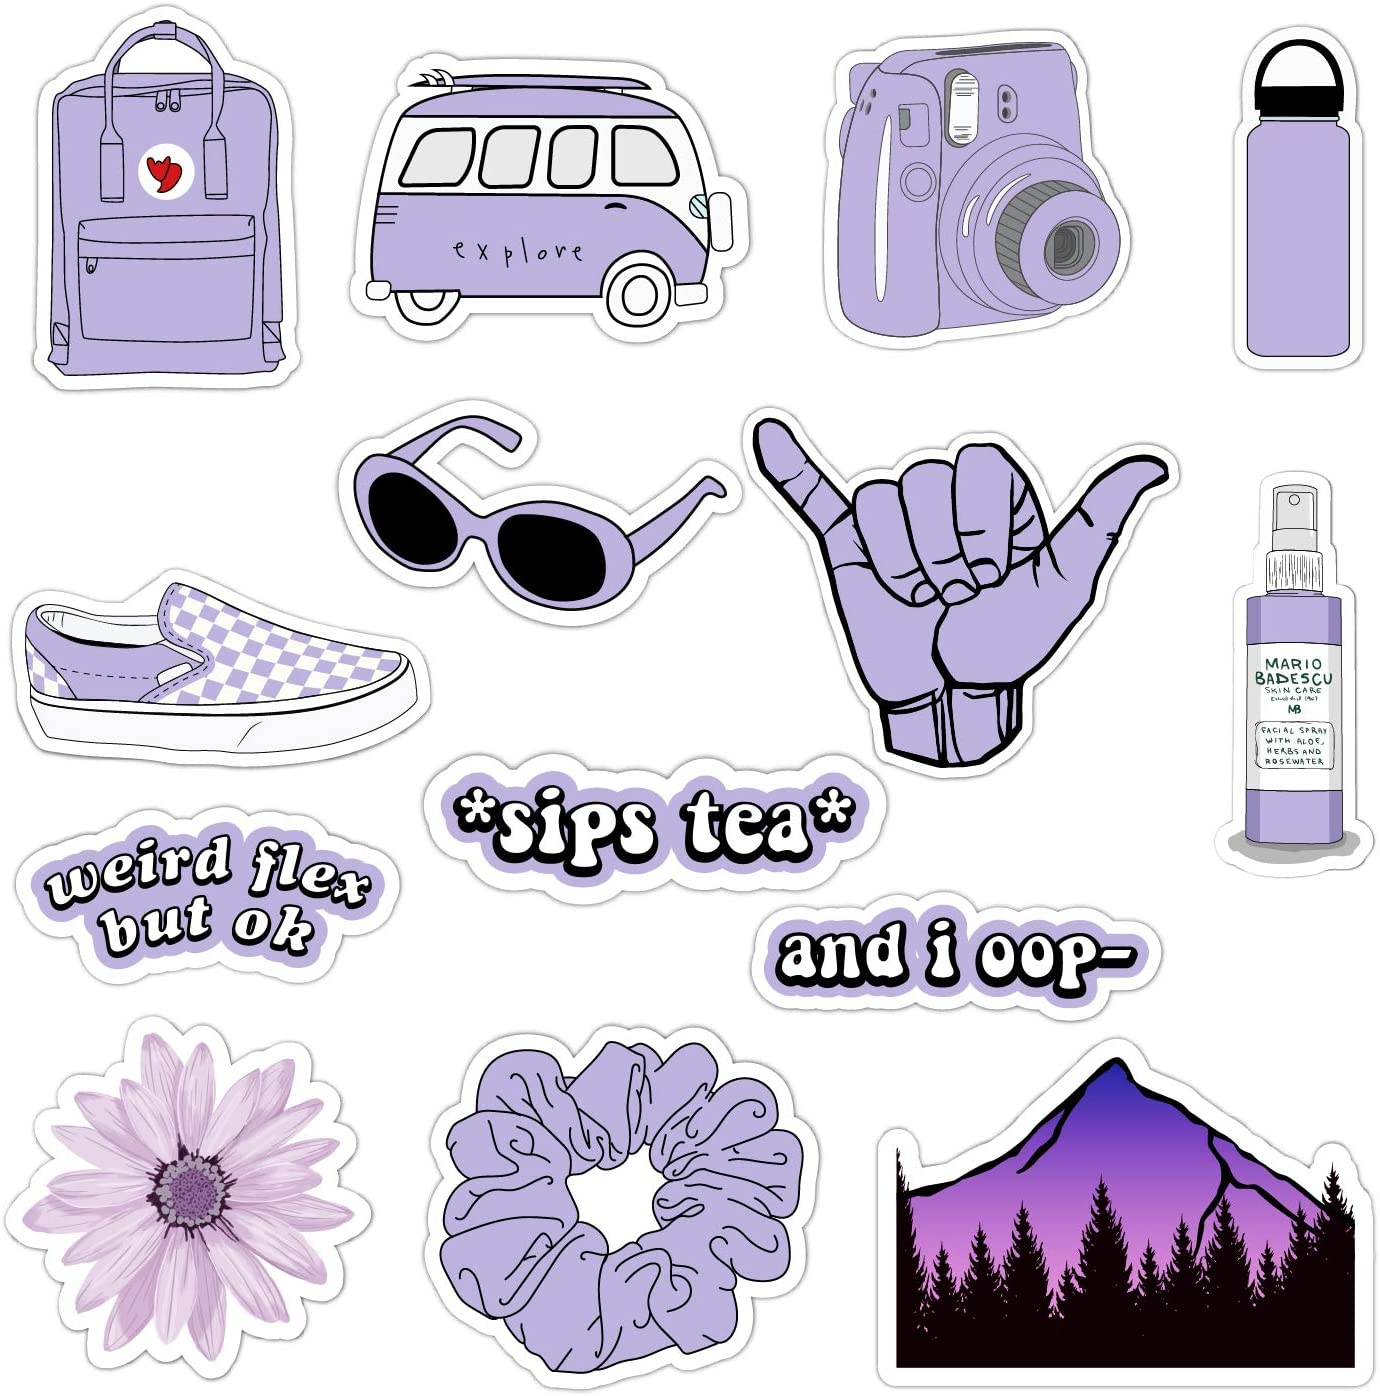 Amazon Com Vsco Vinyl Stickers For Hydro Flask Water Bottle Stickers For Laptop Guitar Computer Phone Luggage Skateboard Aesthetic Trendy Cute Basic Vsco Girl Essential Stuff Pack For Teen Girls Purple Home